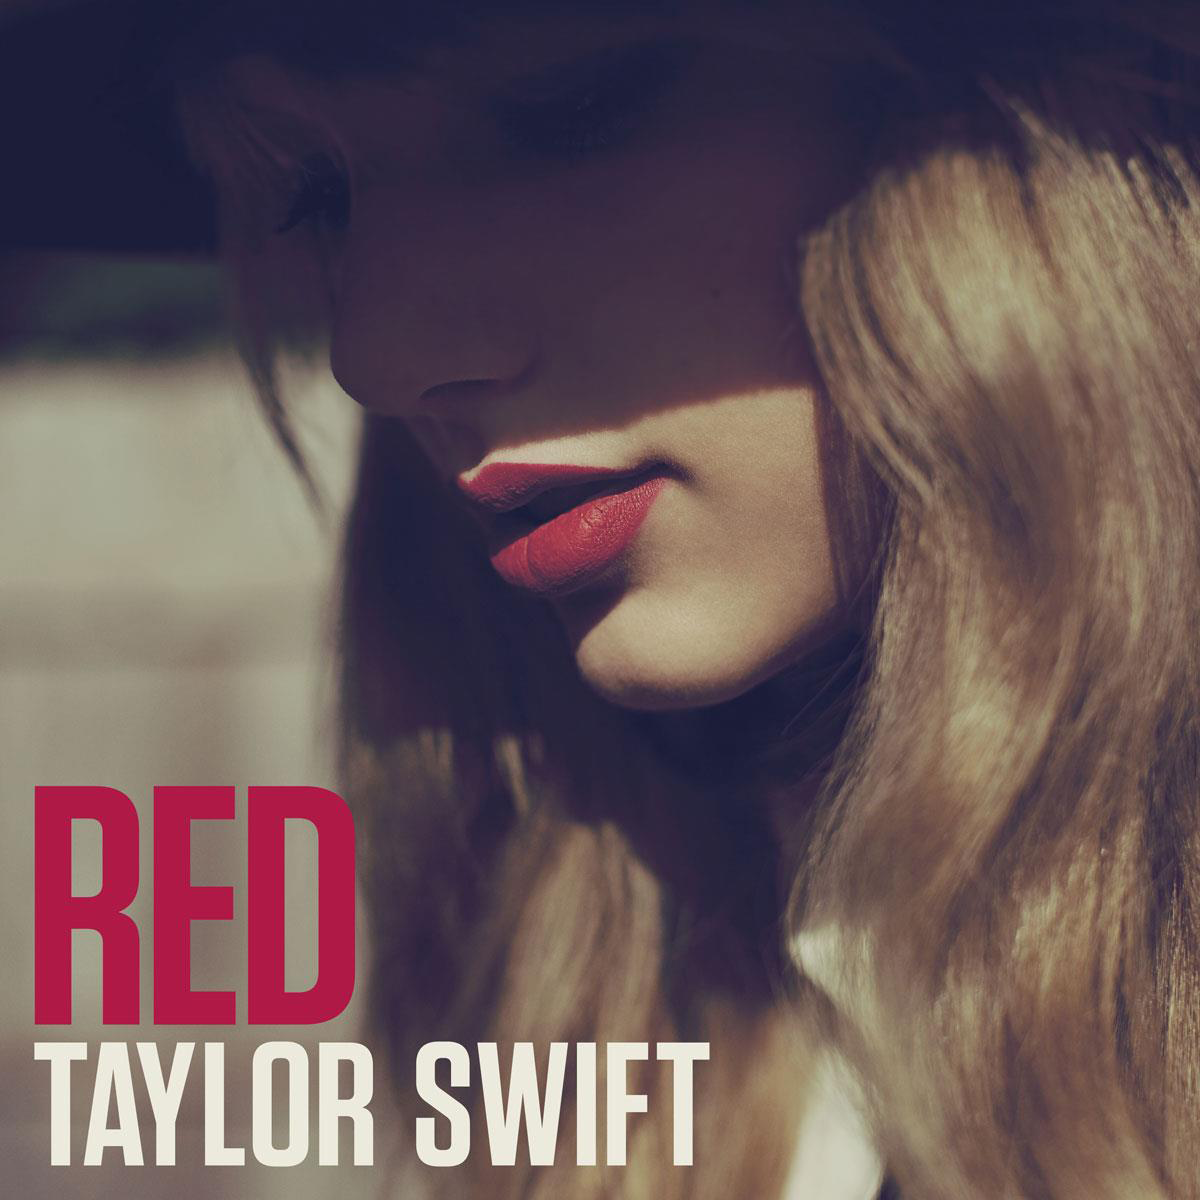 RED by Taylor Swift (Big Machine Records, 2012)